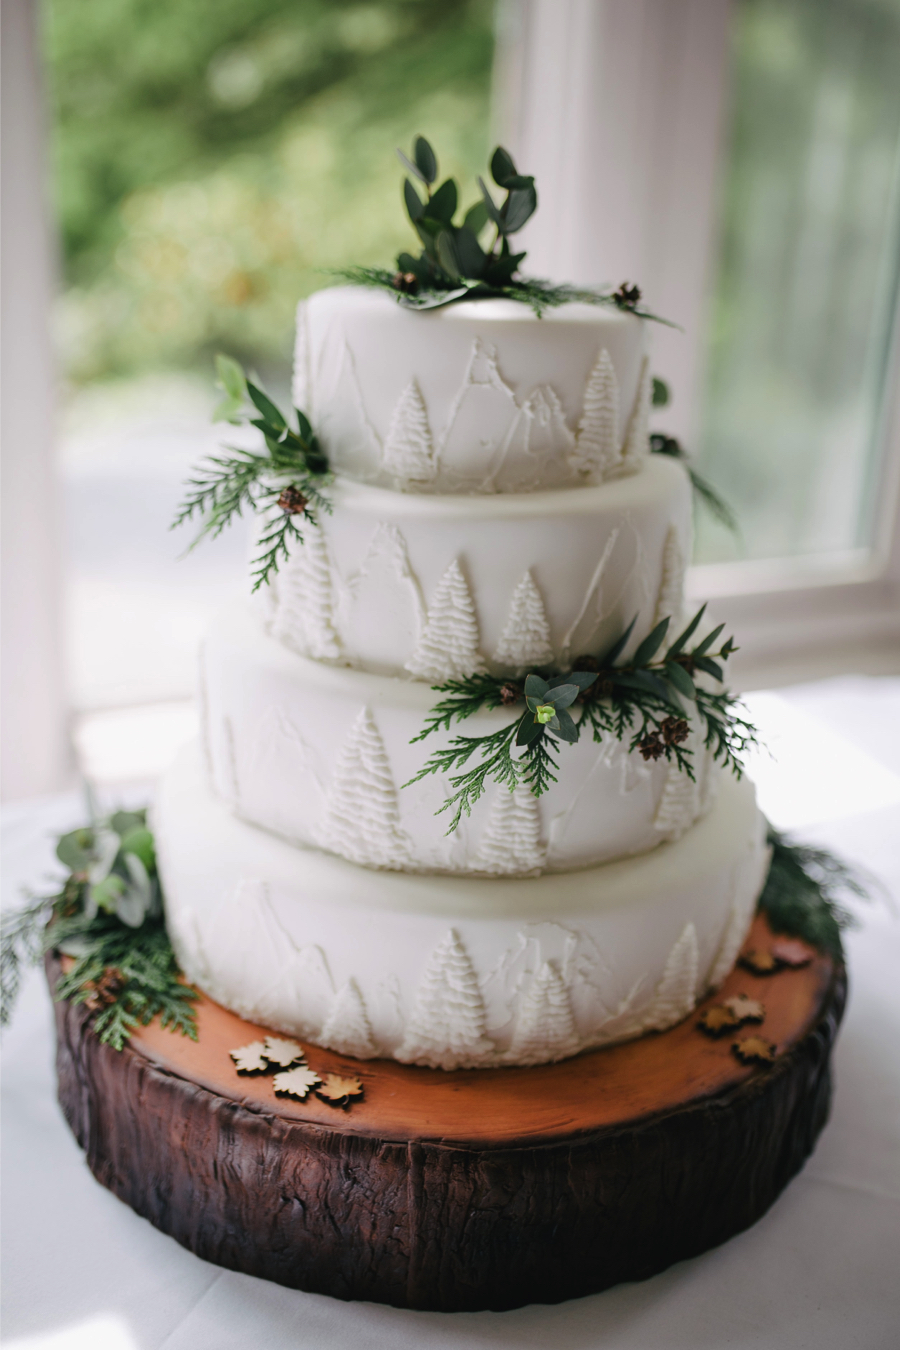 fruit-wedding-cake-trends-2019_2.jpg